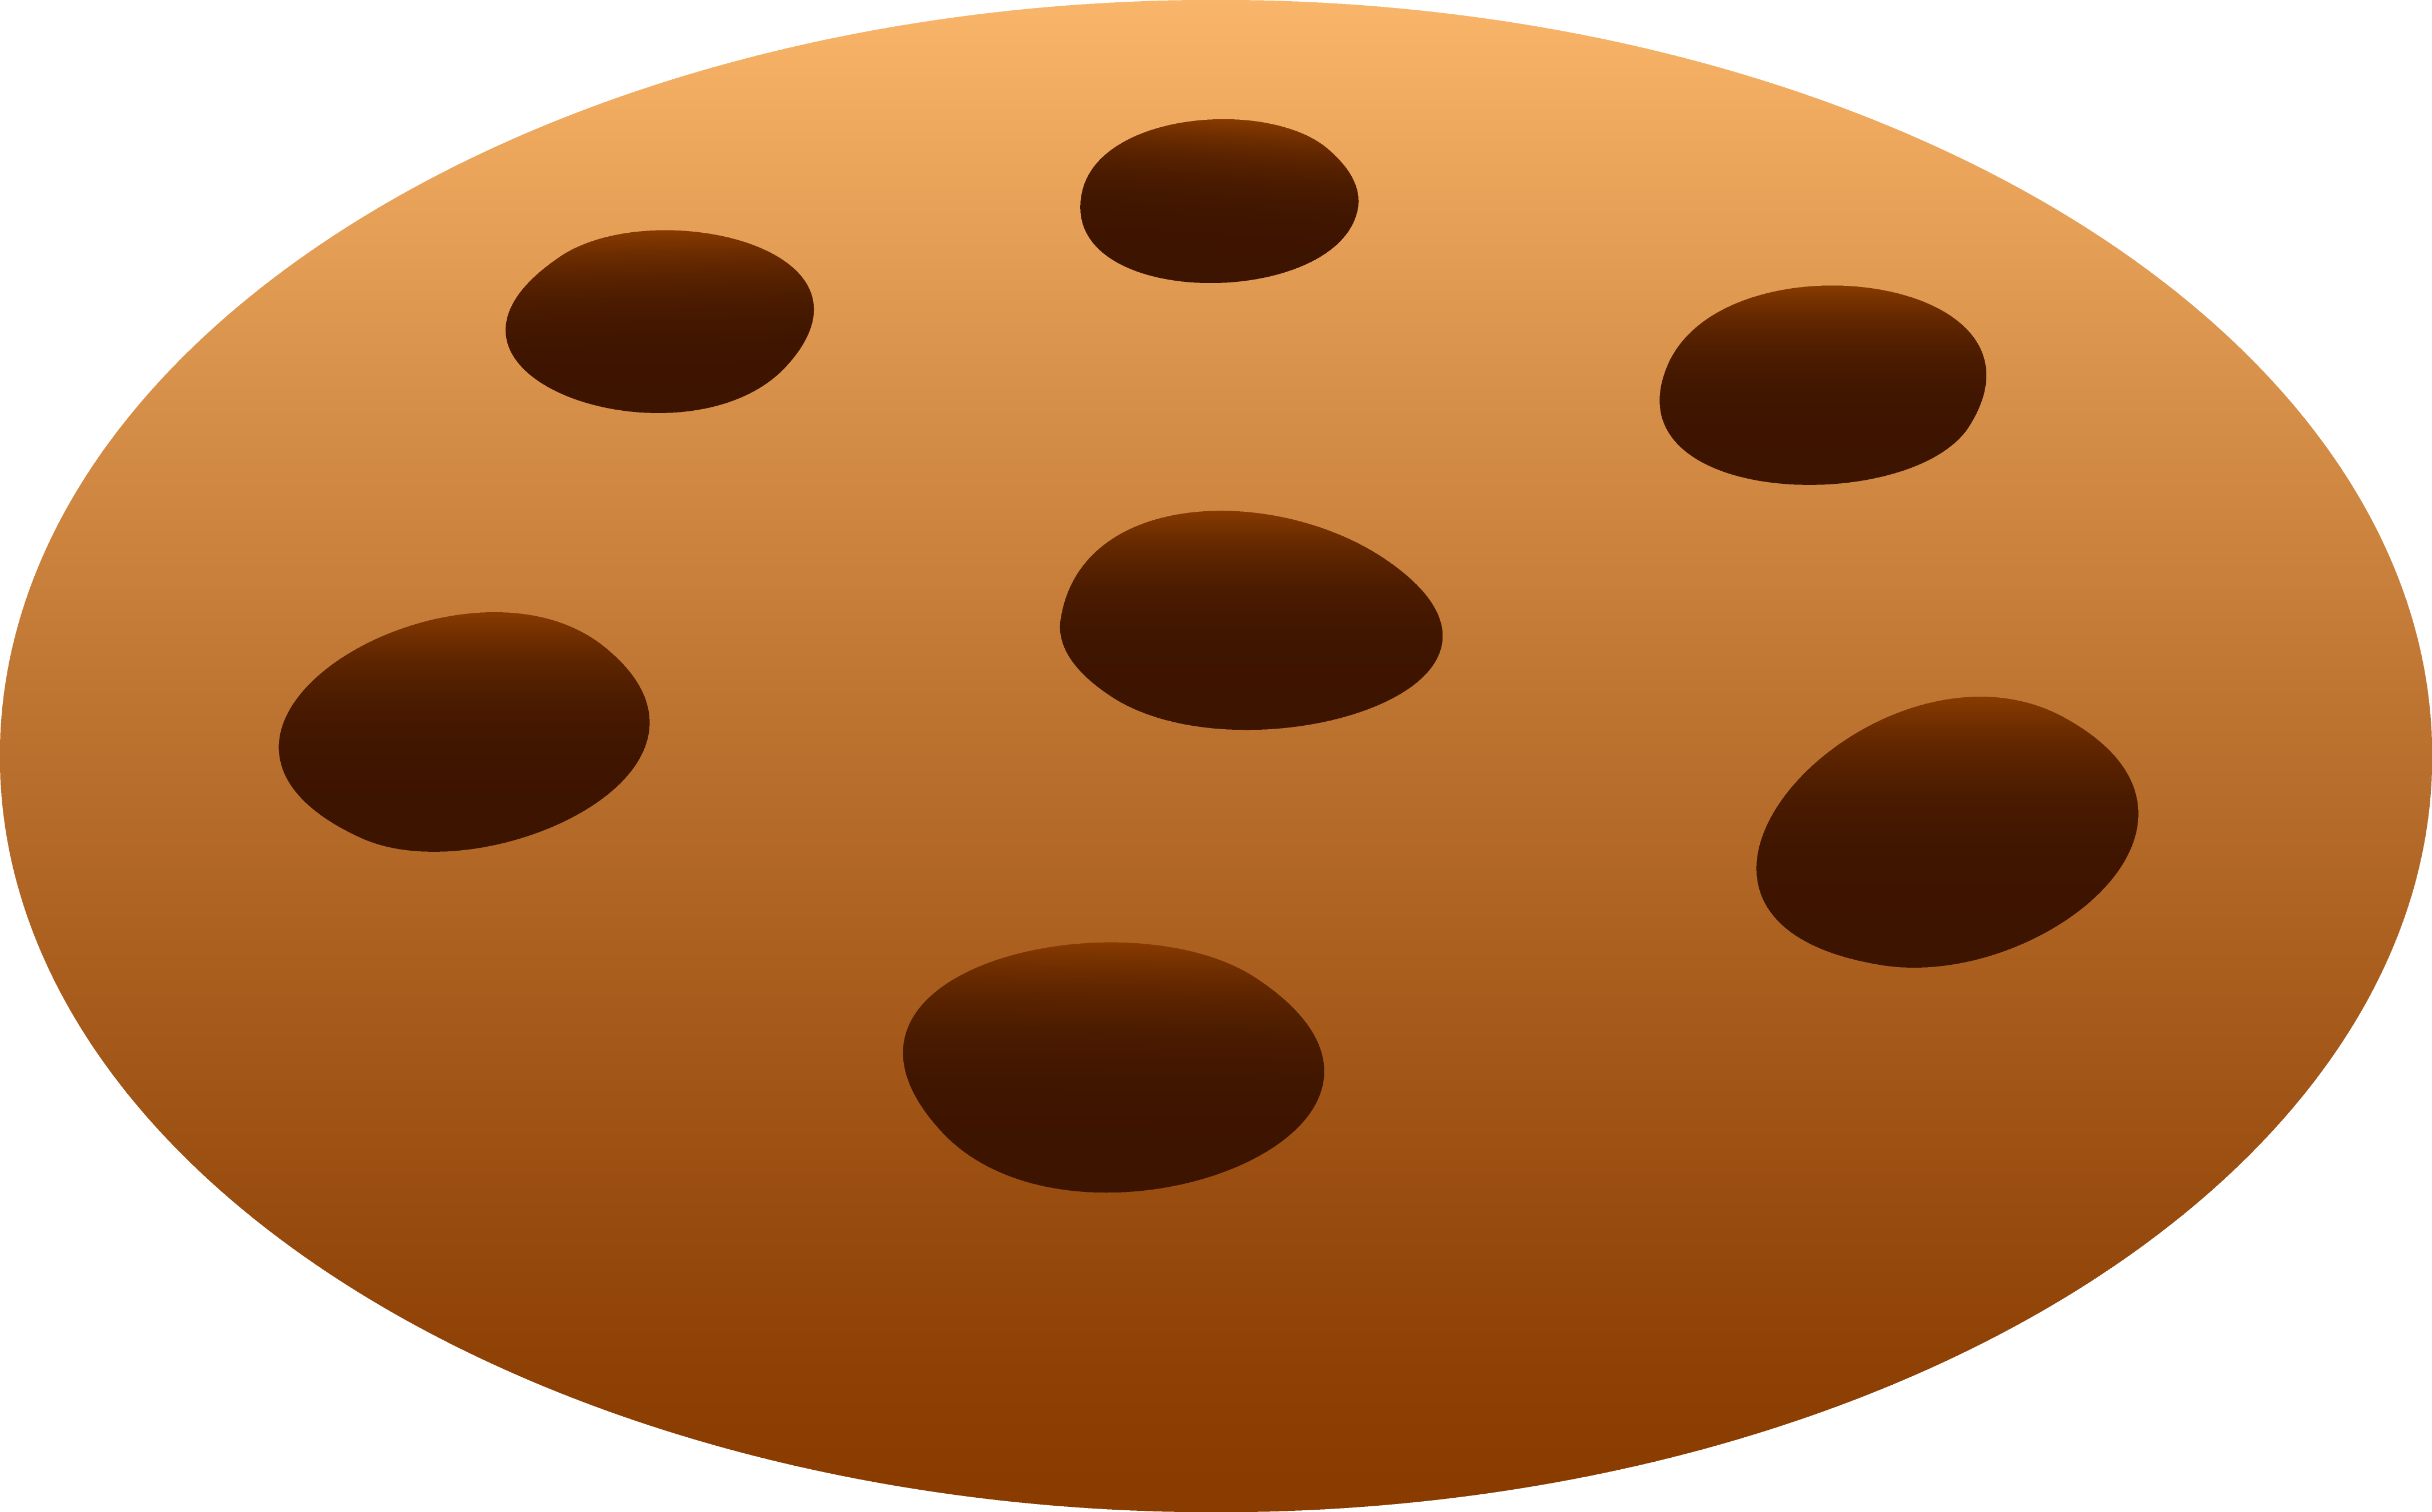 Chocolate Chip Cookie Clipart Free Clip -Chocolate Chip Cookie Clipart Free Clip Art Images-8